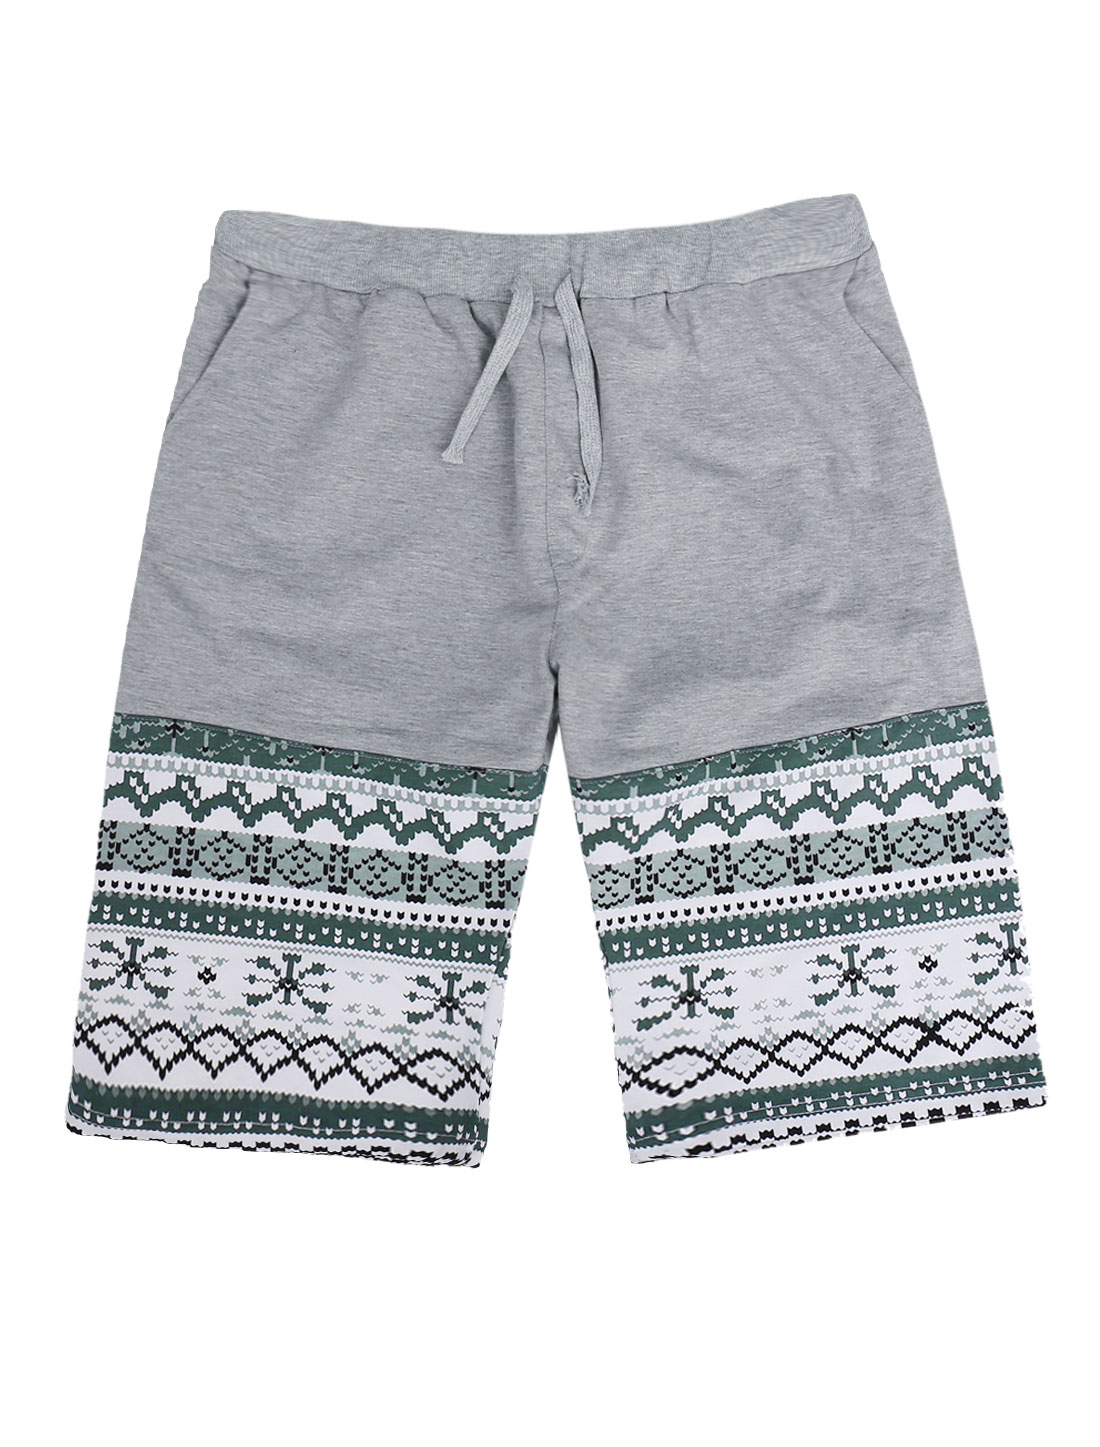 Man Casual Geometric Prints Stretchy Waist Two Pockets Front Light Gray Shorts W30